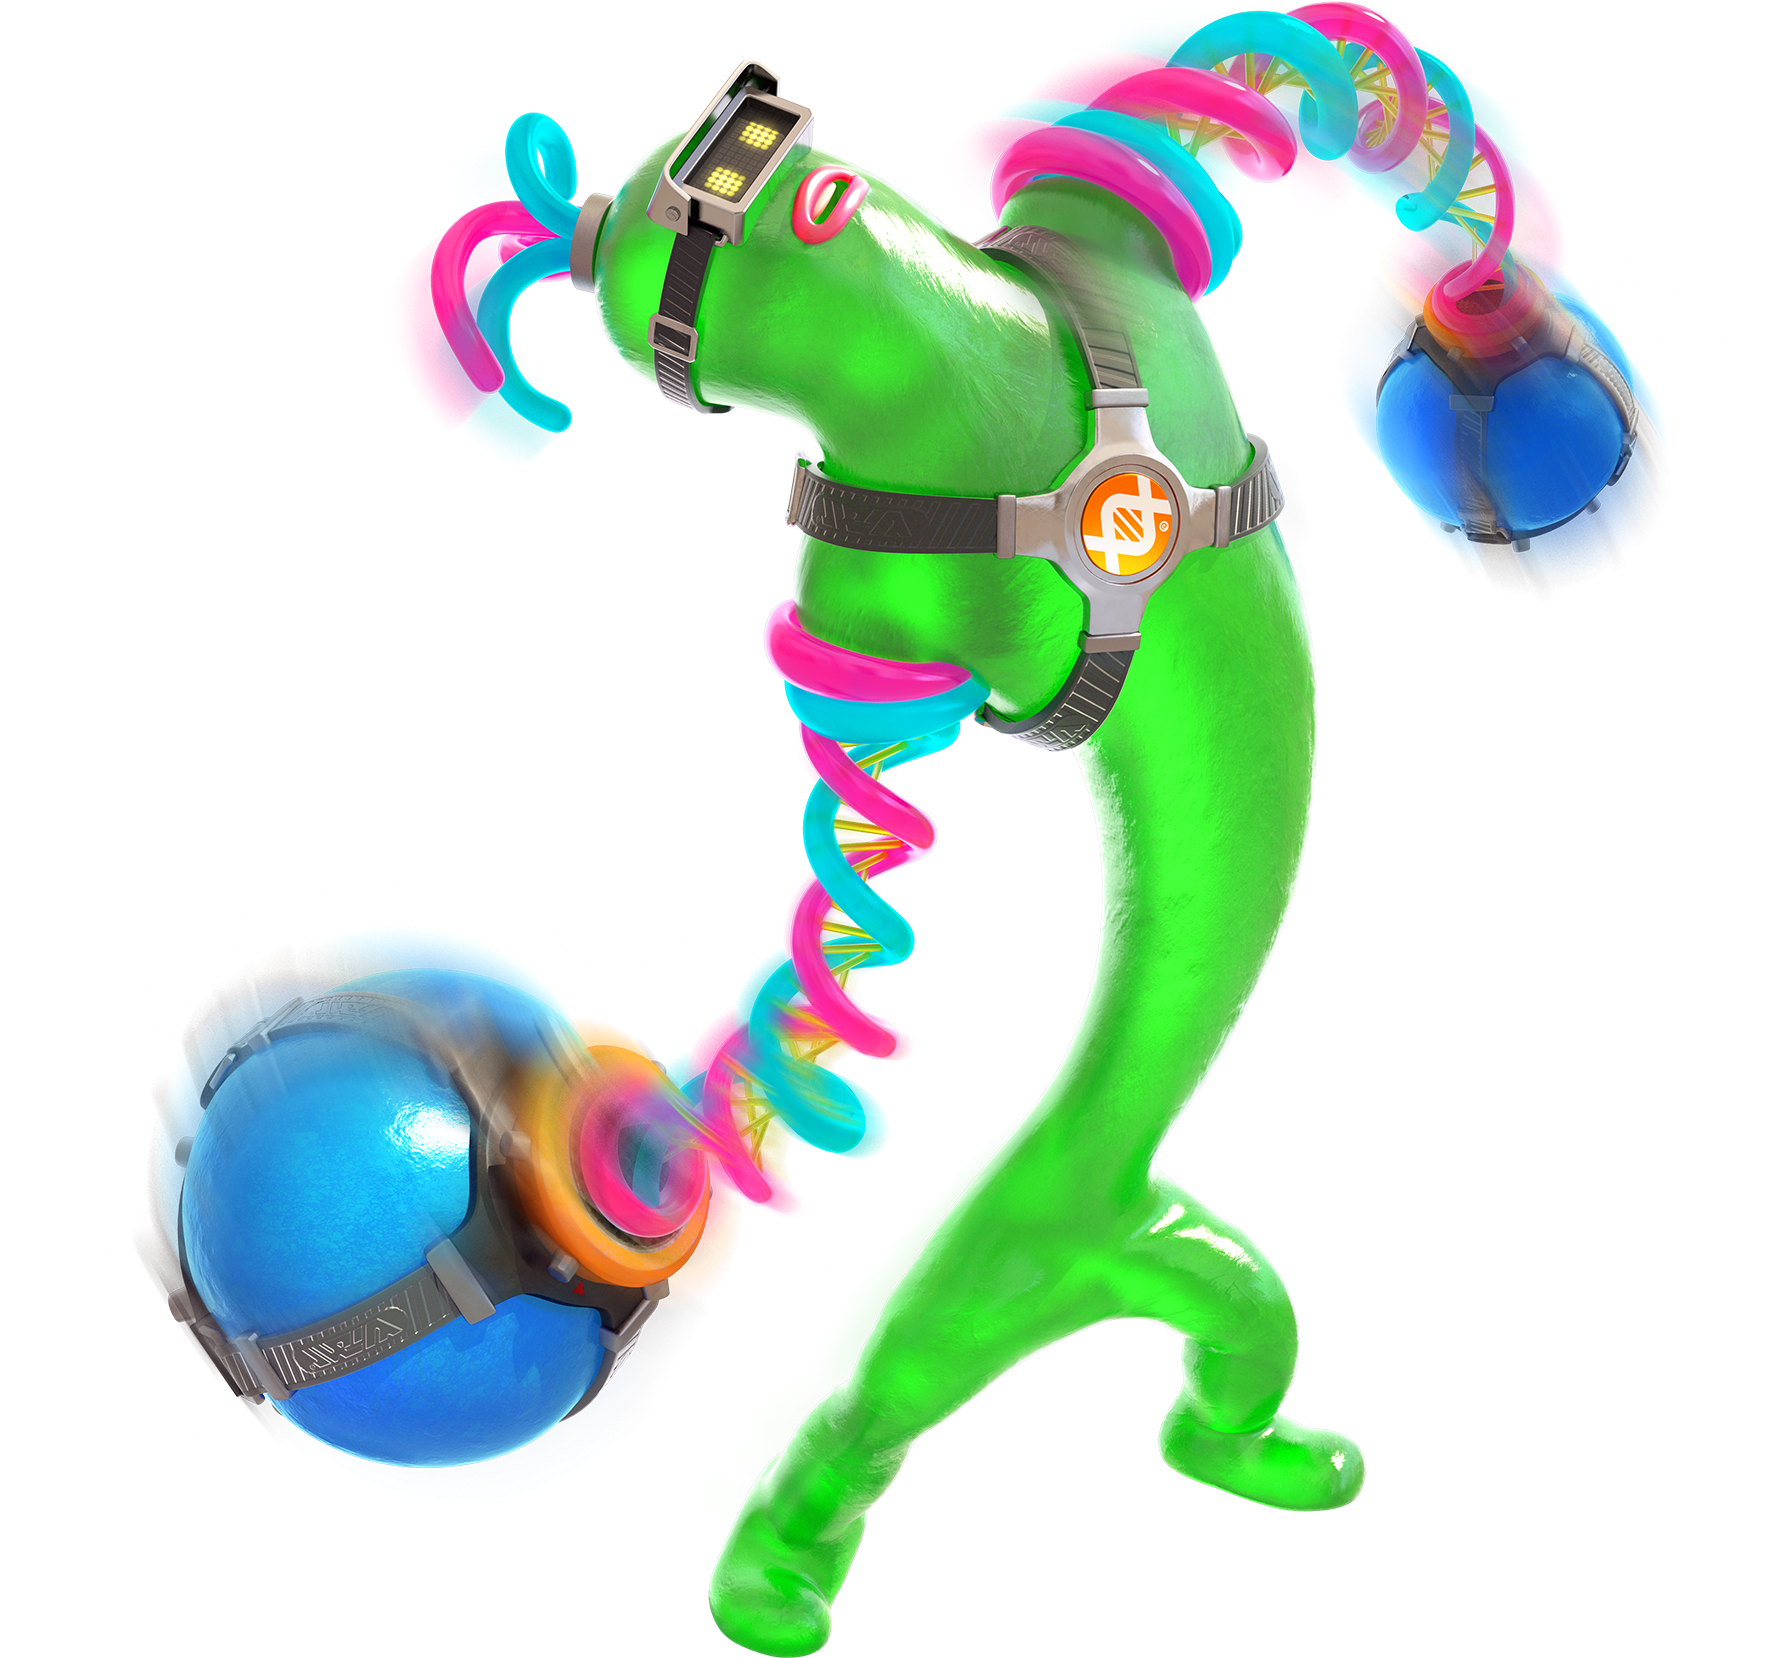 Arms nintendo png. Download hd craig majaski